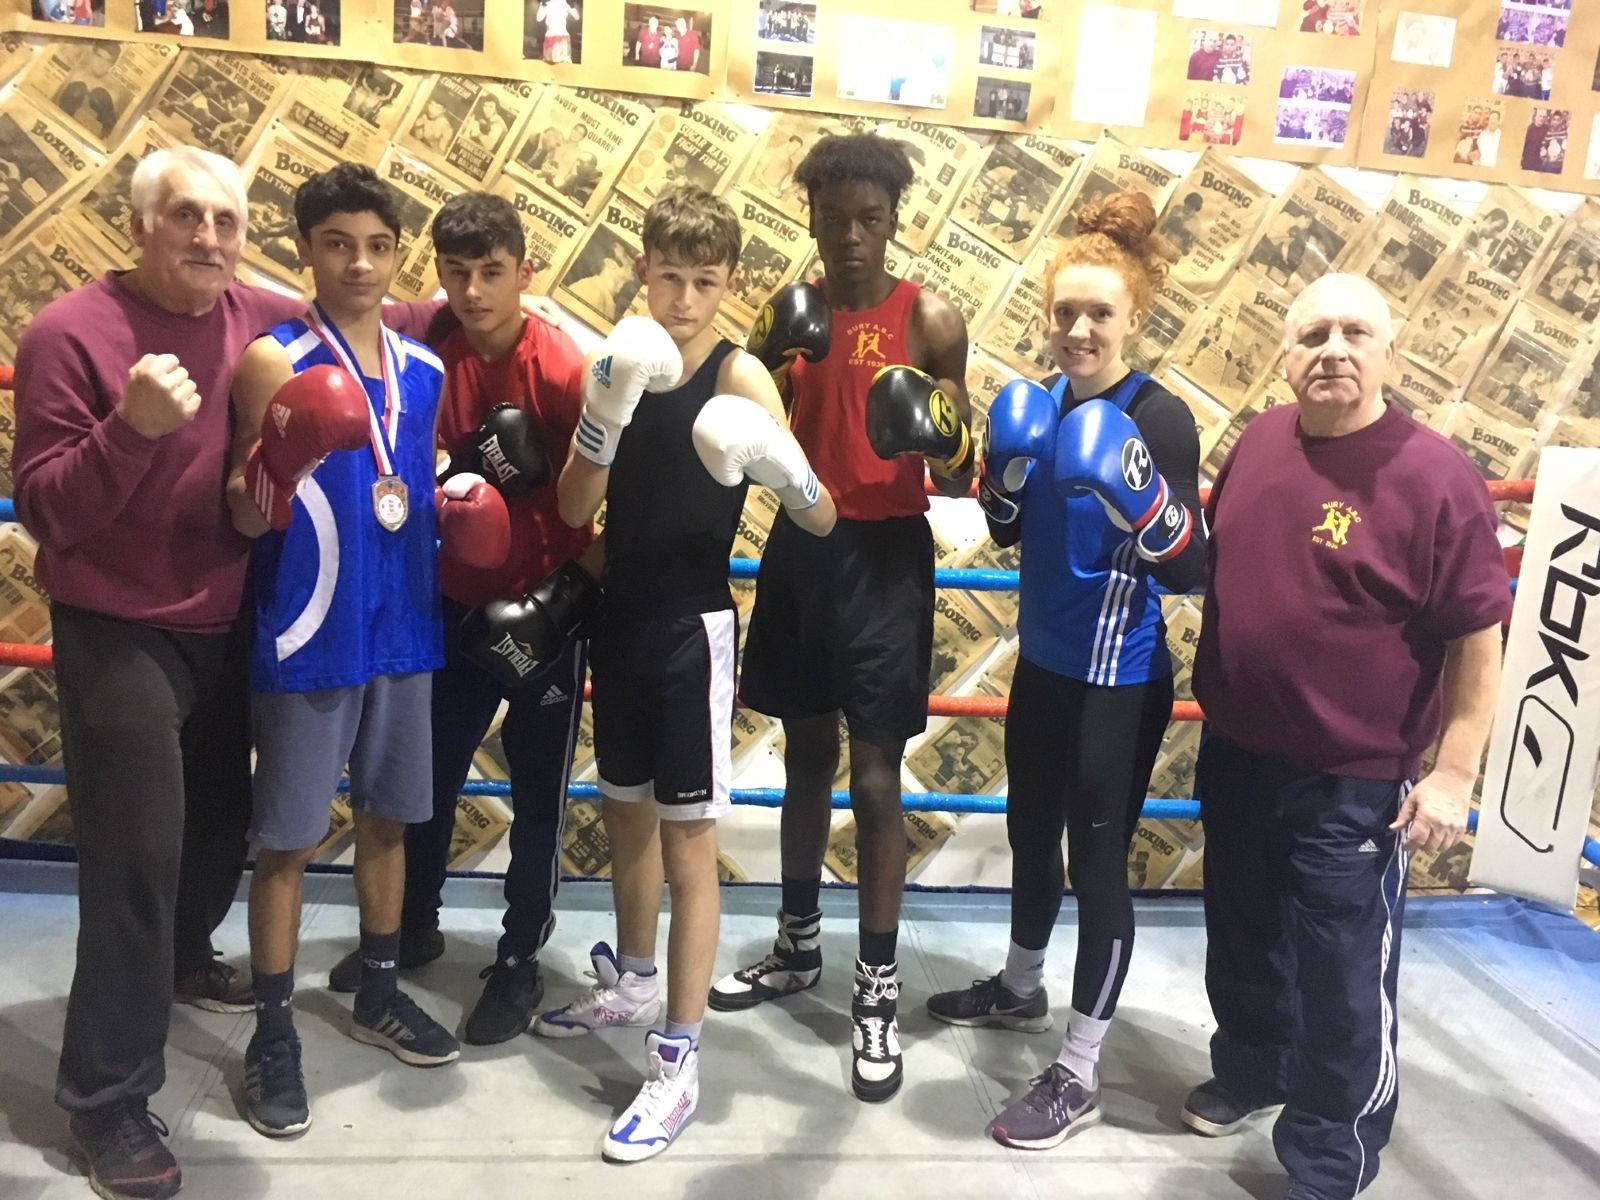 STRONGER TOGETHER: Bury ABC's successful group, from the left, head coach Mick Jelley, Abdul Khan, Yousef Khan, Patrick Gaynor, Golding Makela, Sarah Dunne and coach Colin Carr